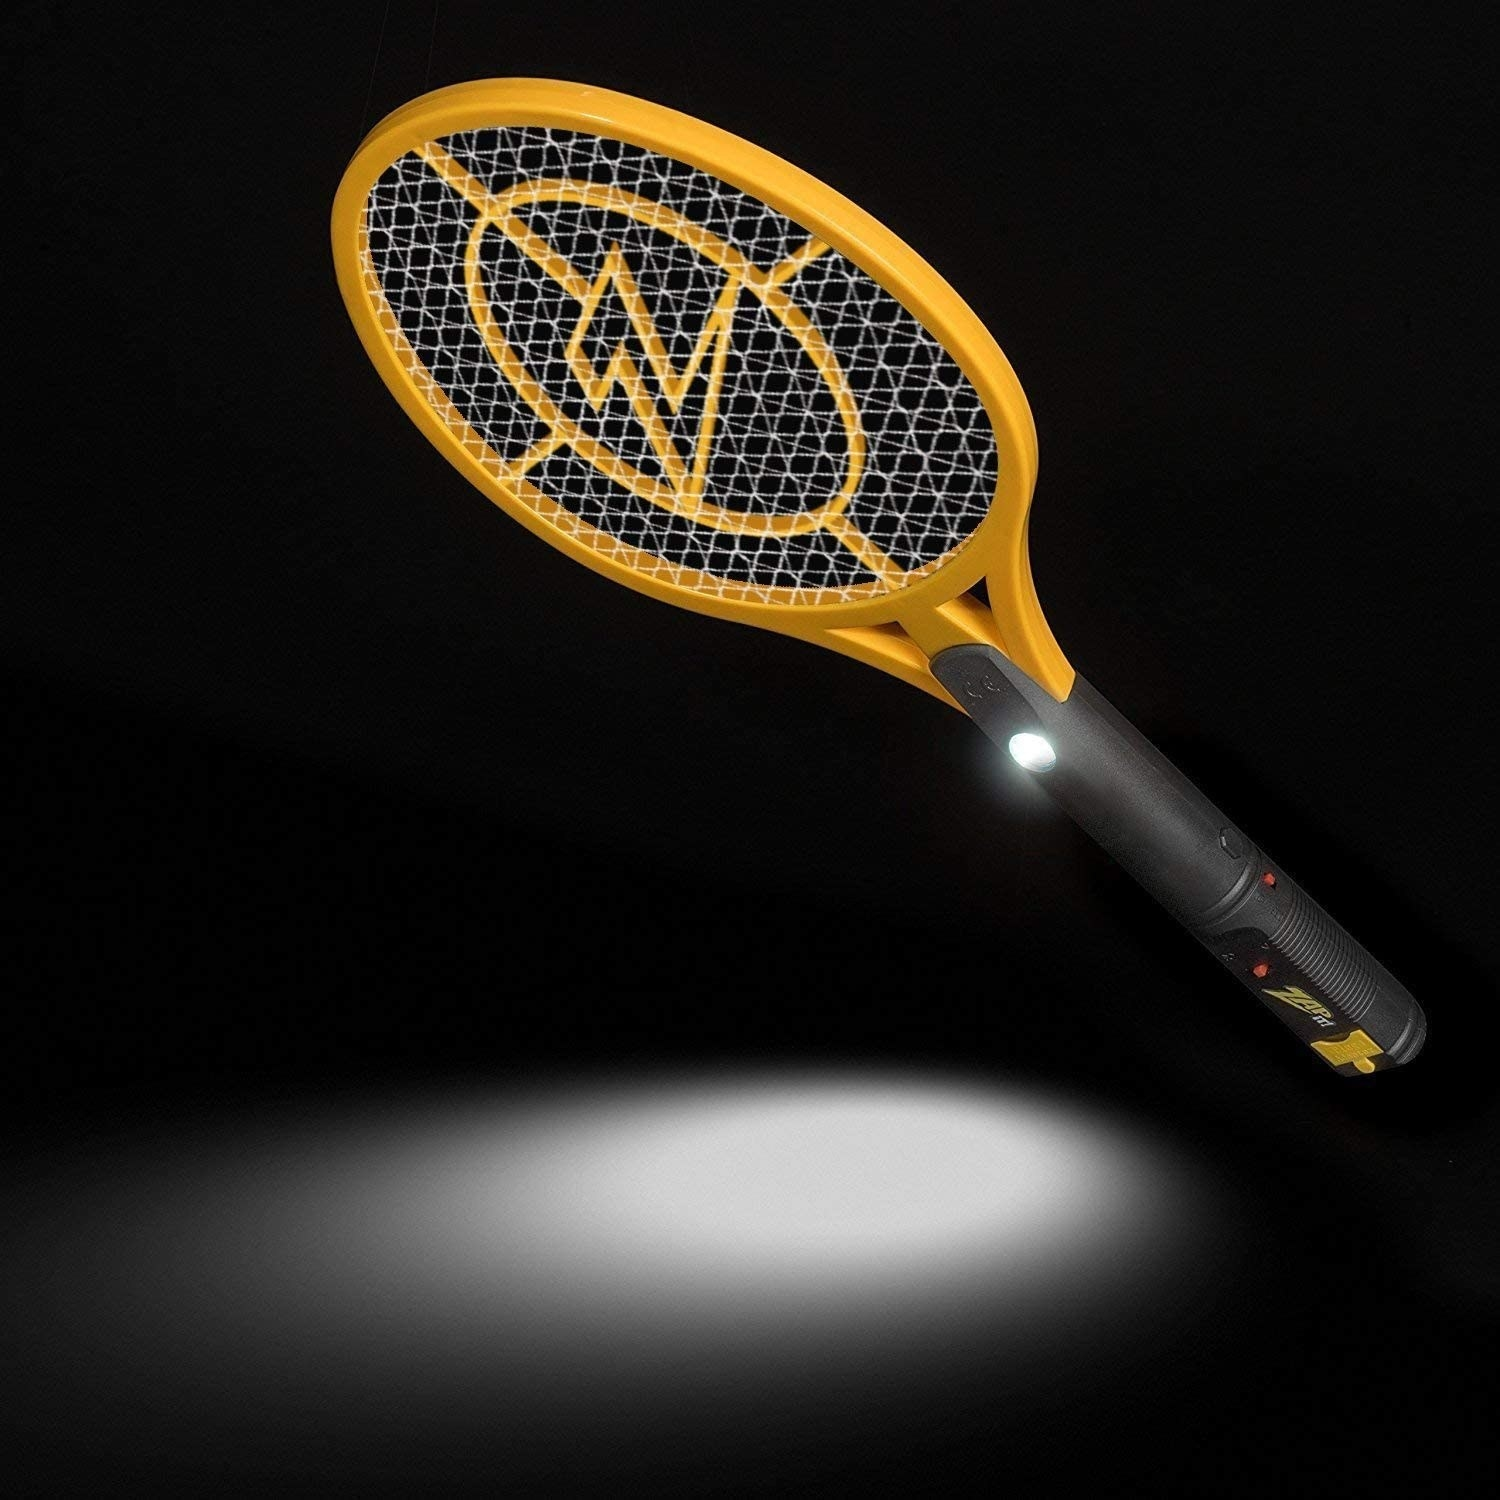 A yellow and black bug zapper that looks like a small tennis racket with an LED light